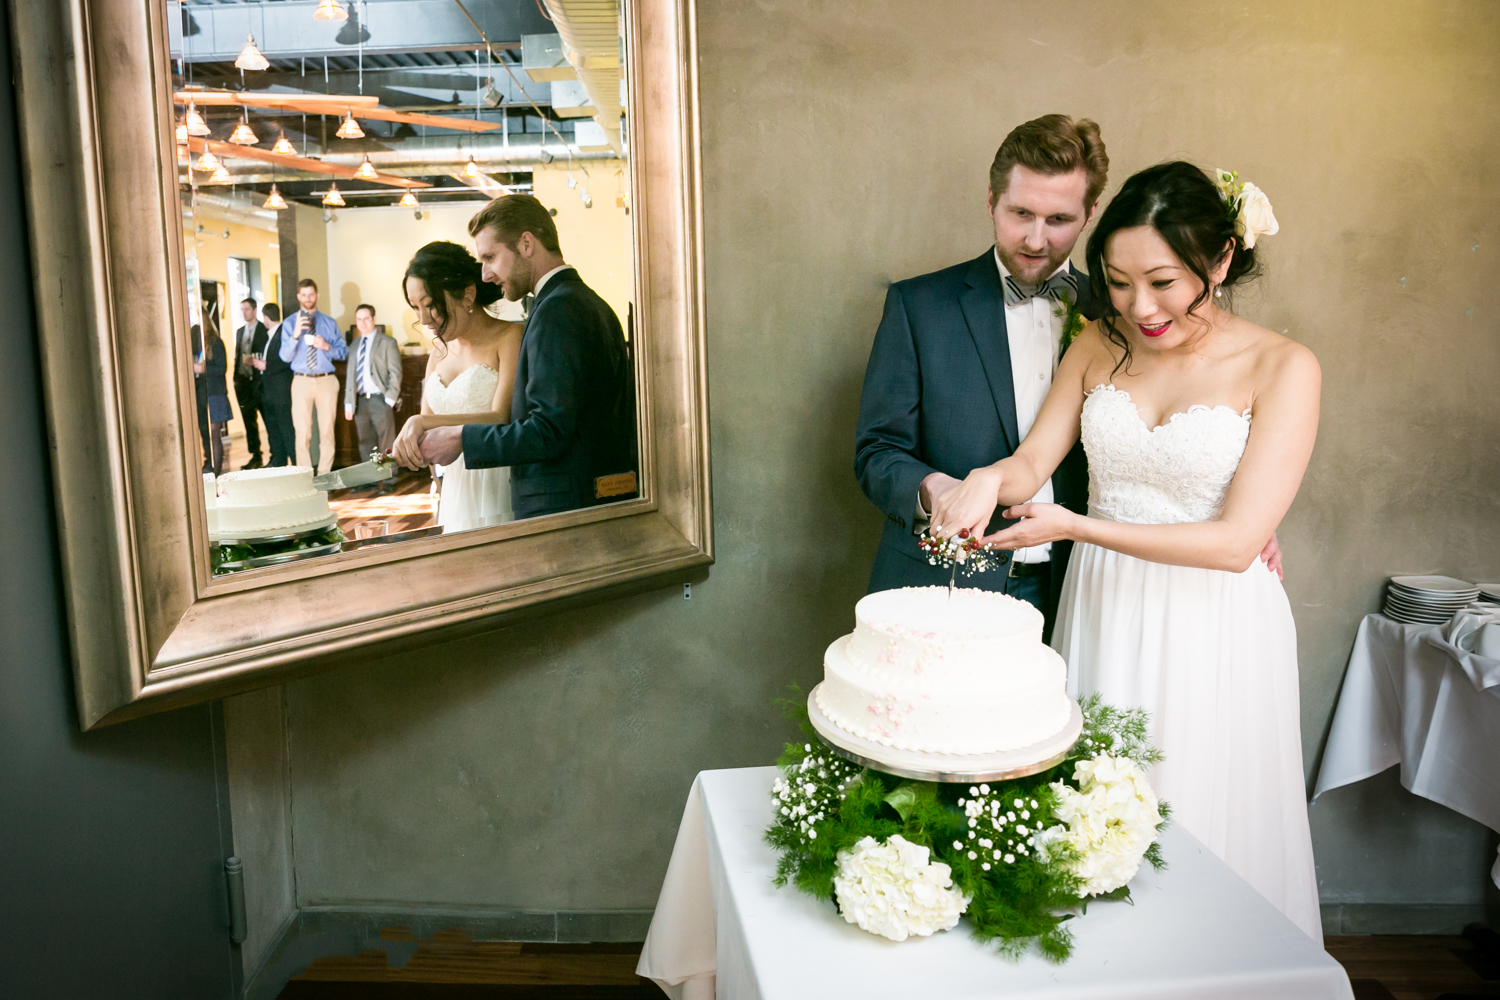 Bride and groom cutting cake with reflection in mirror